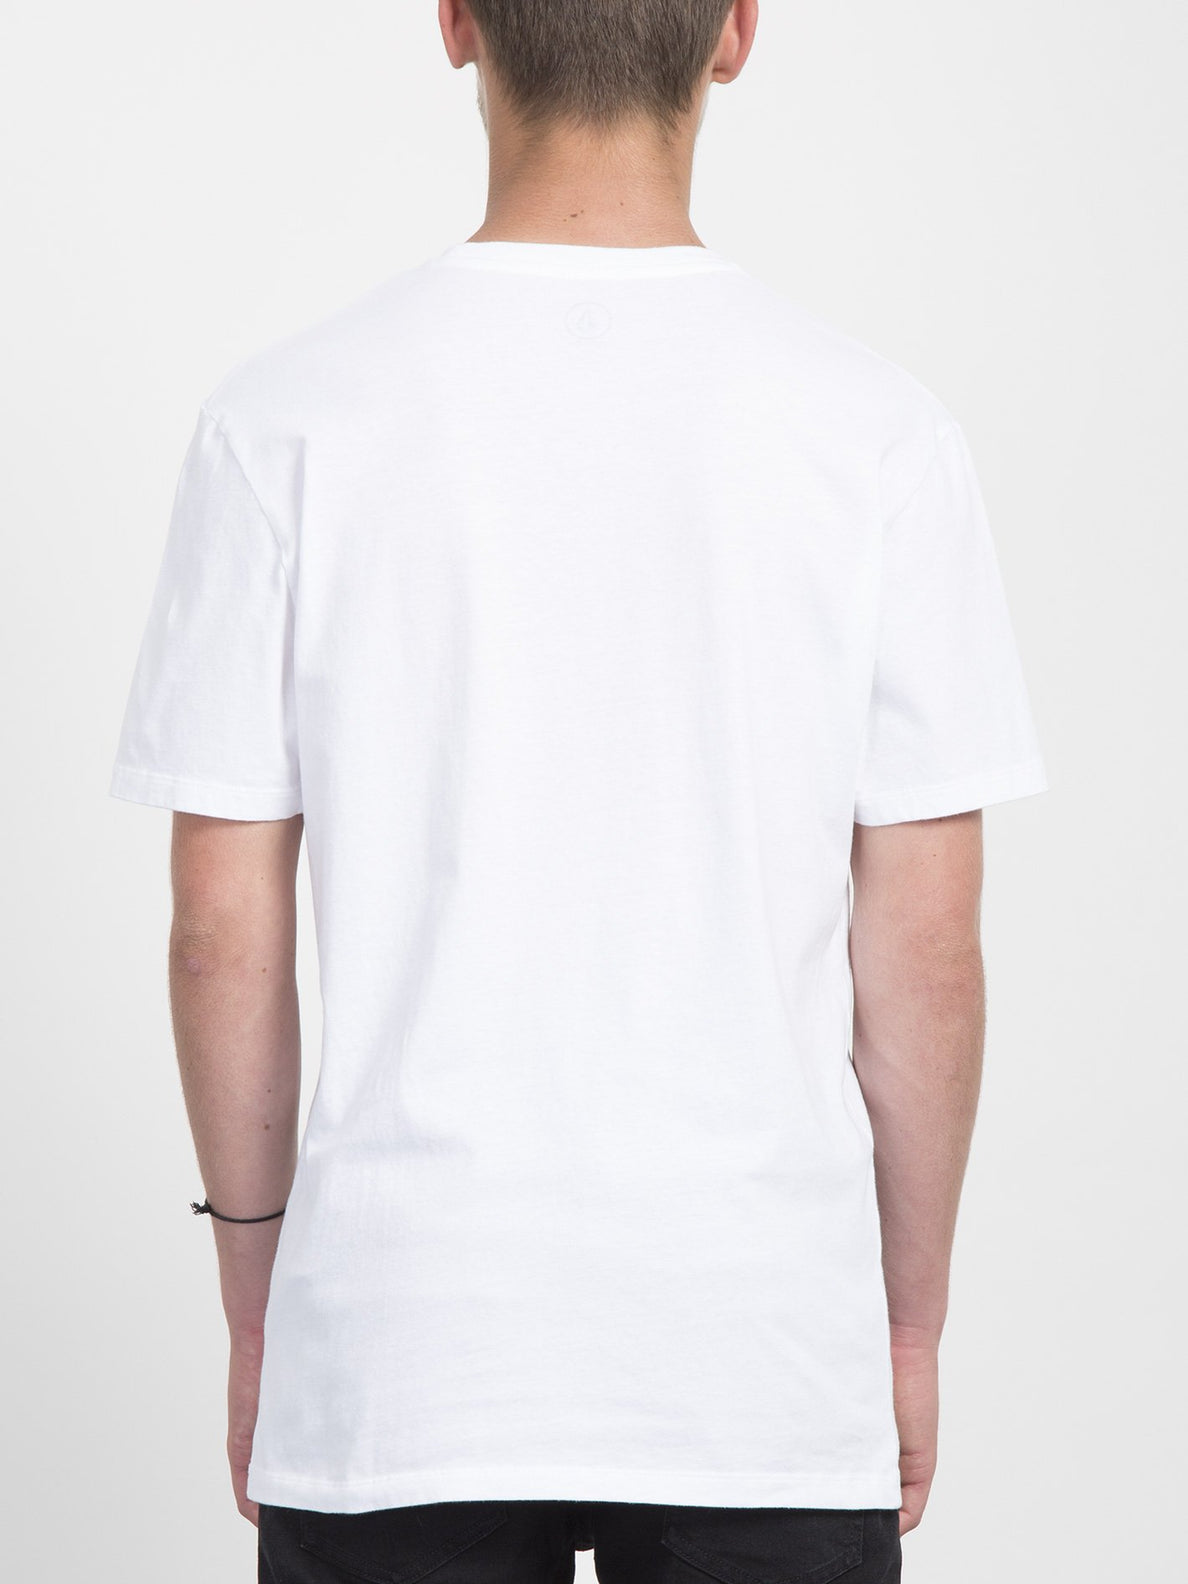 T-shirt State of mind - White